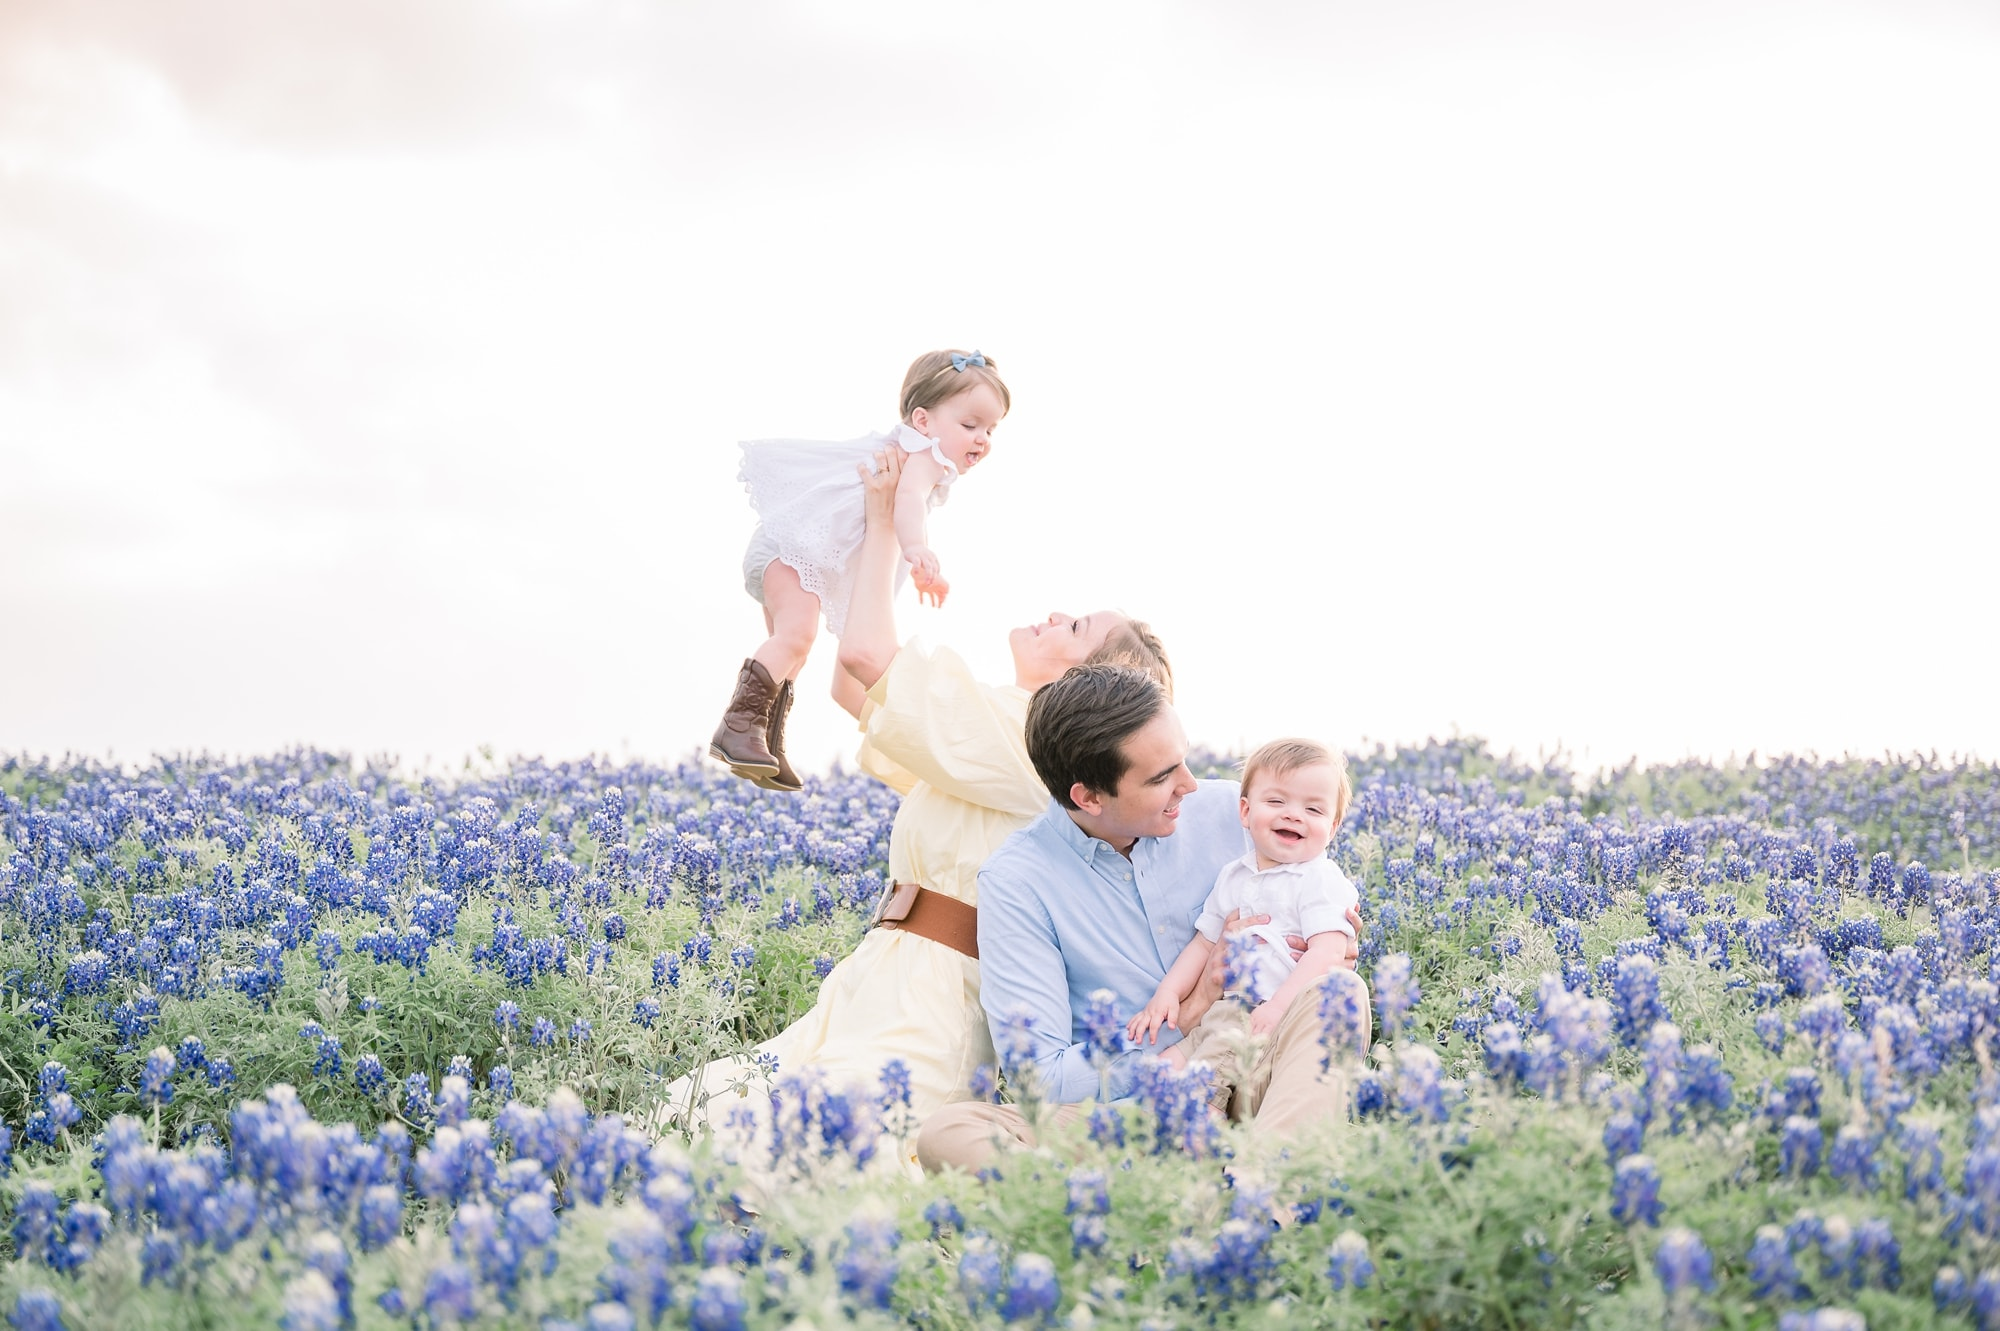 Mom and Dad playing with twins among the Texas bluebonnets. Photo by Prosper family photographer, Aimee Hamilton Photography.